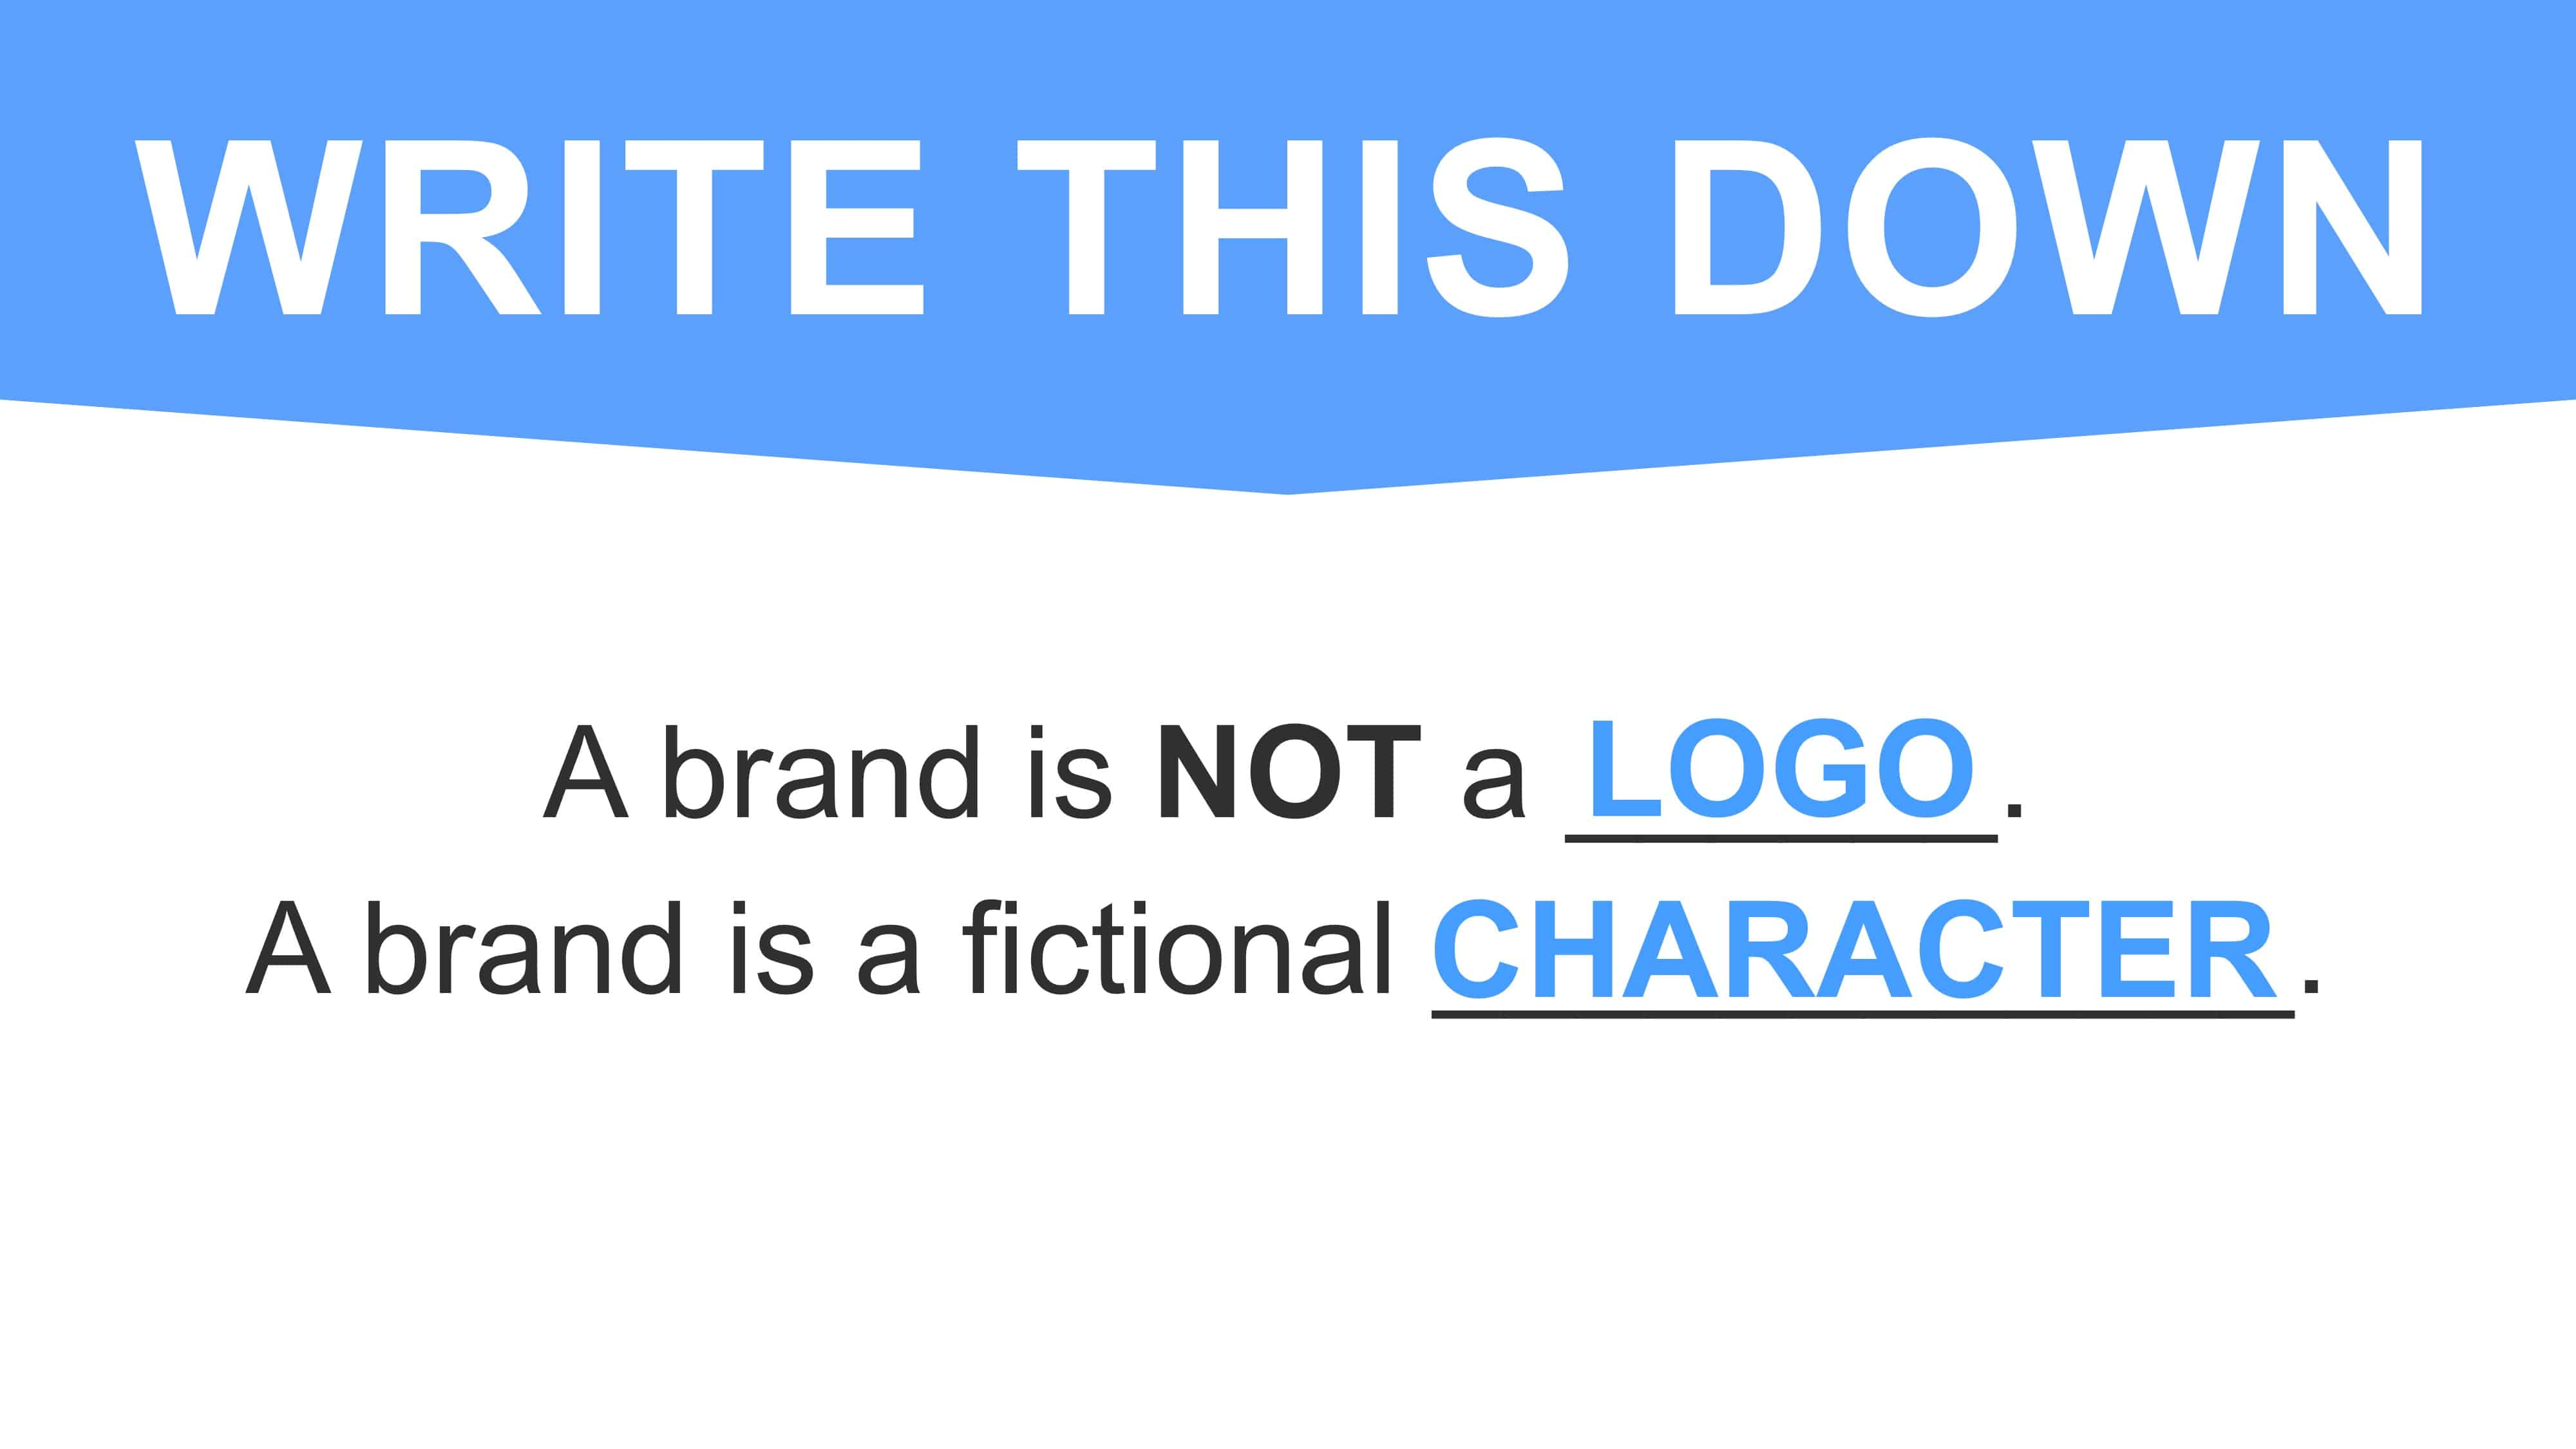 A brand is a character